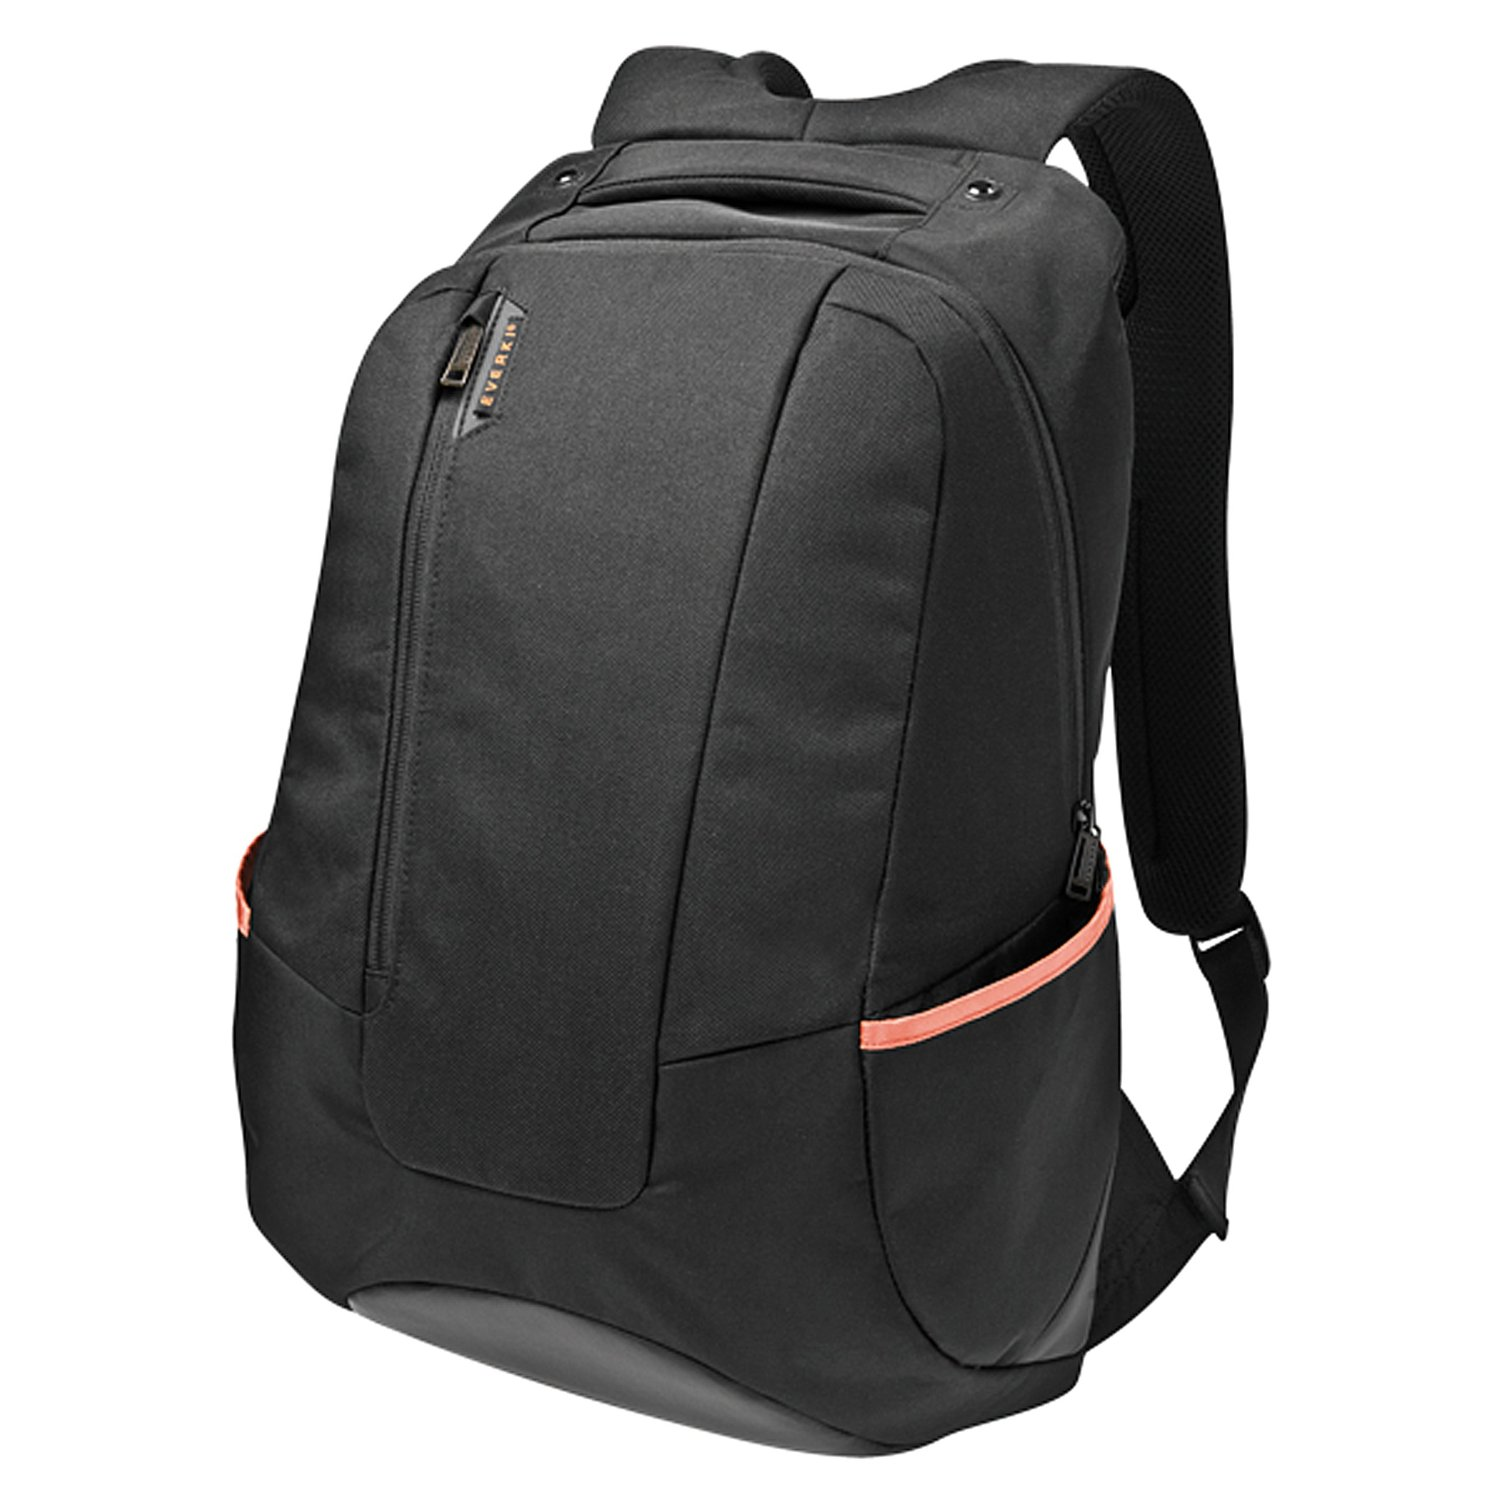 Laptop Backpack 17 Inch aXdzBWIs